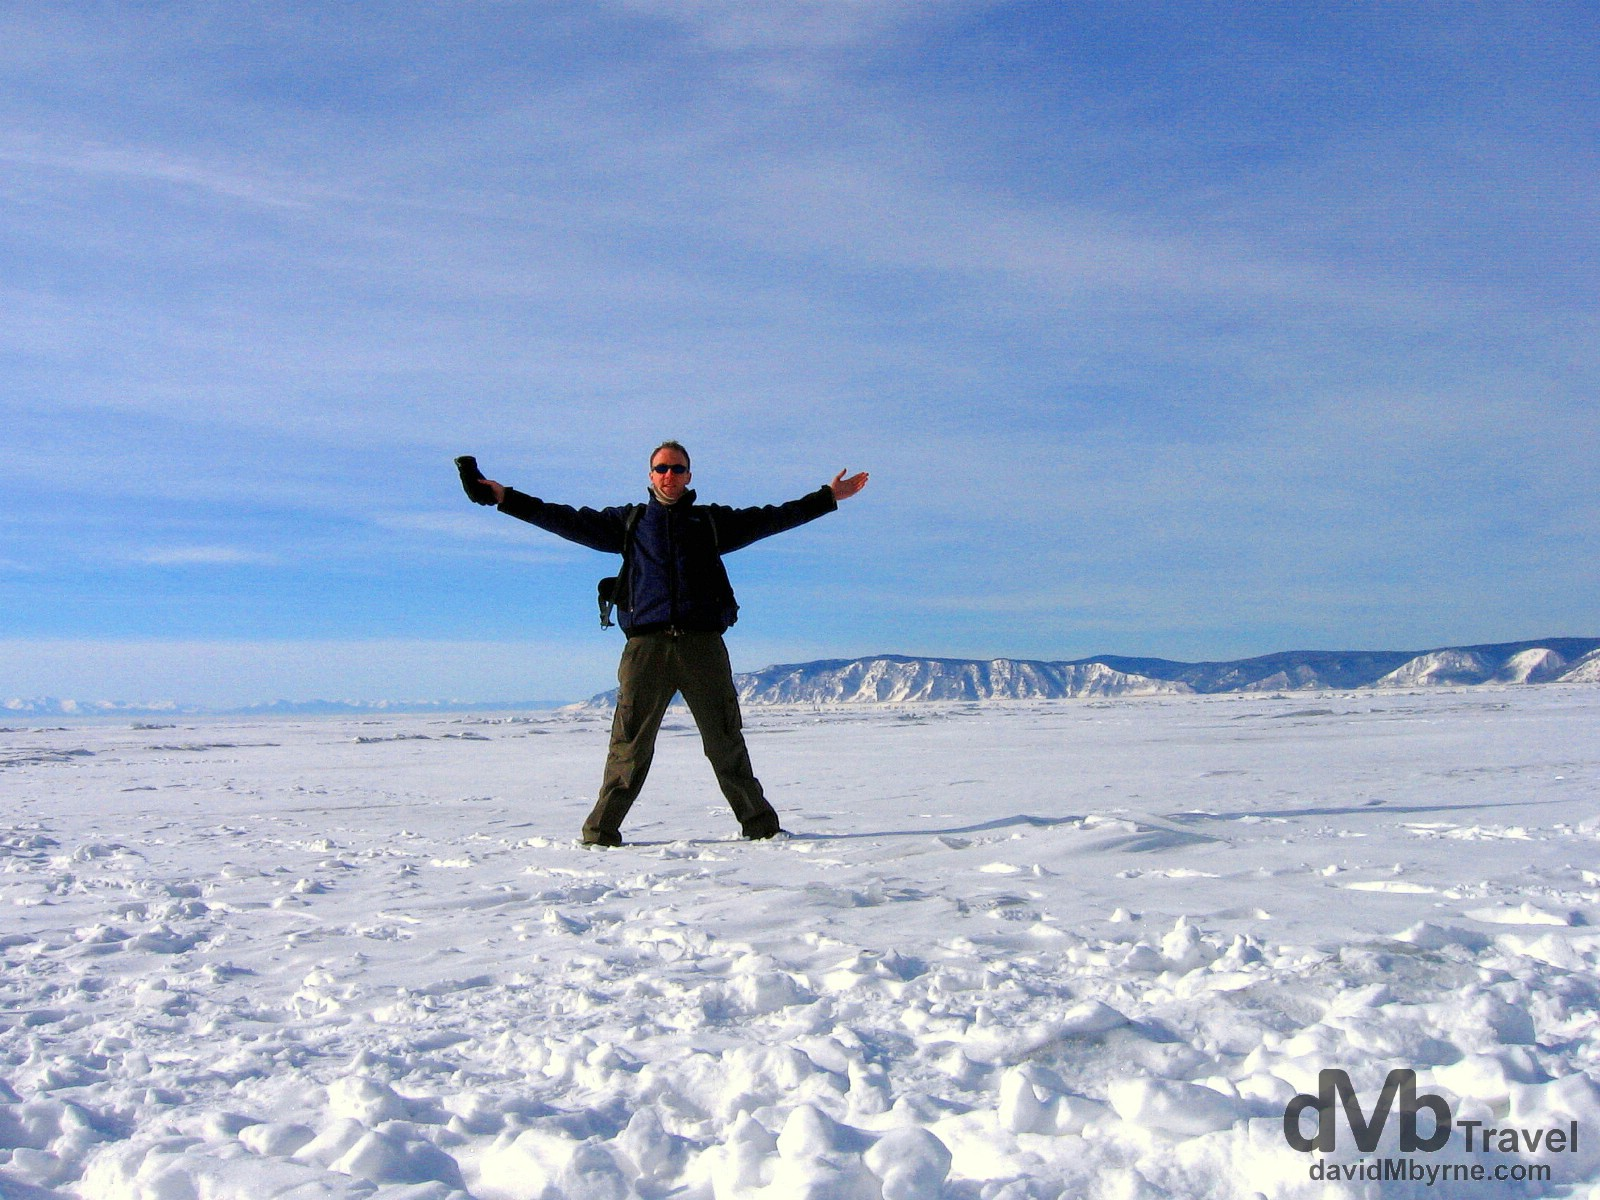 On the frozen expanse of Lake Baikal in Siberian Russia. February 18, 2006.